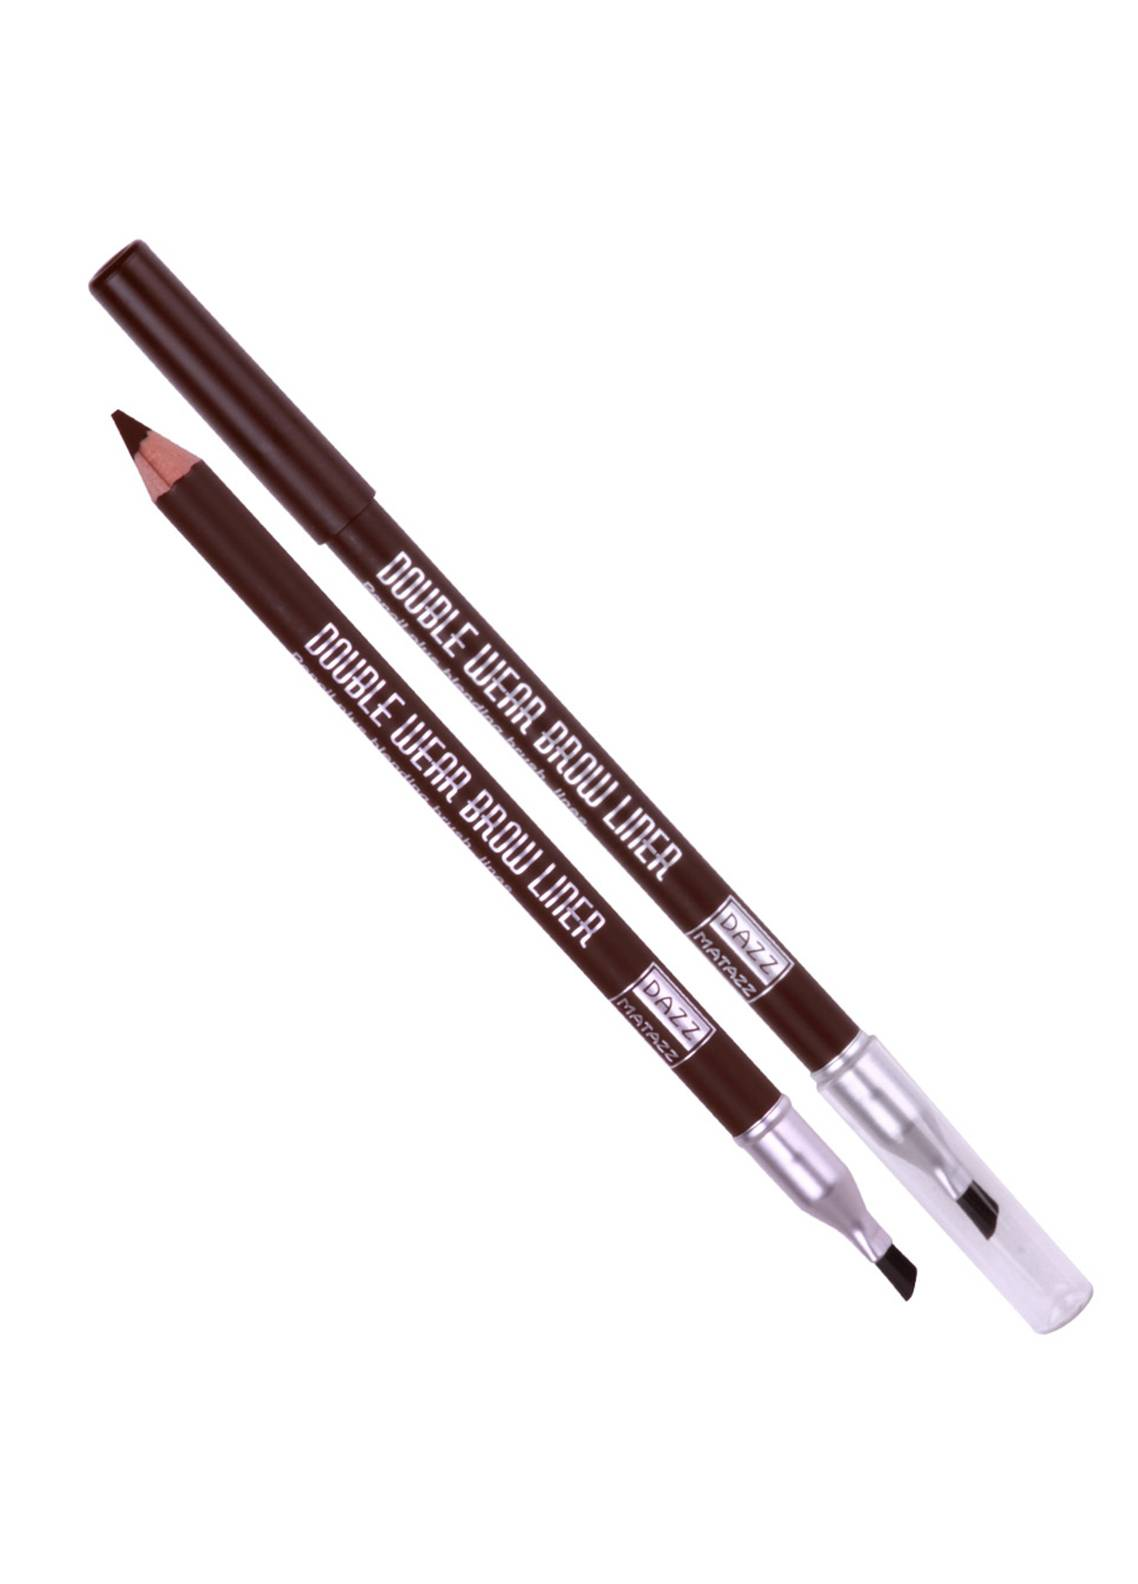 Dazz Matazz Double Wear Brow Liner-Black